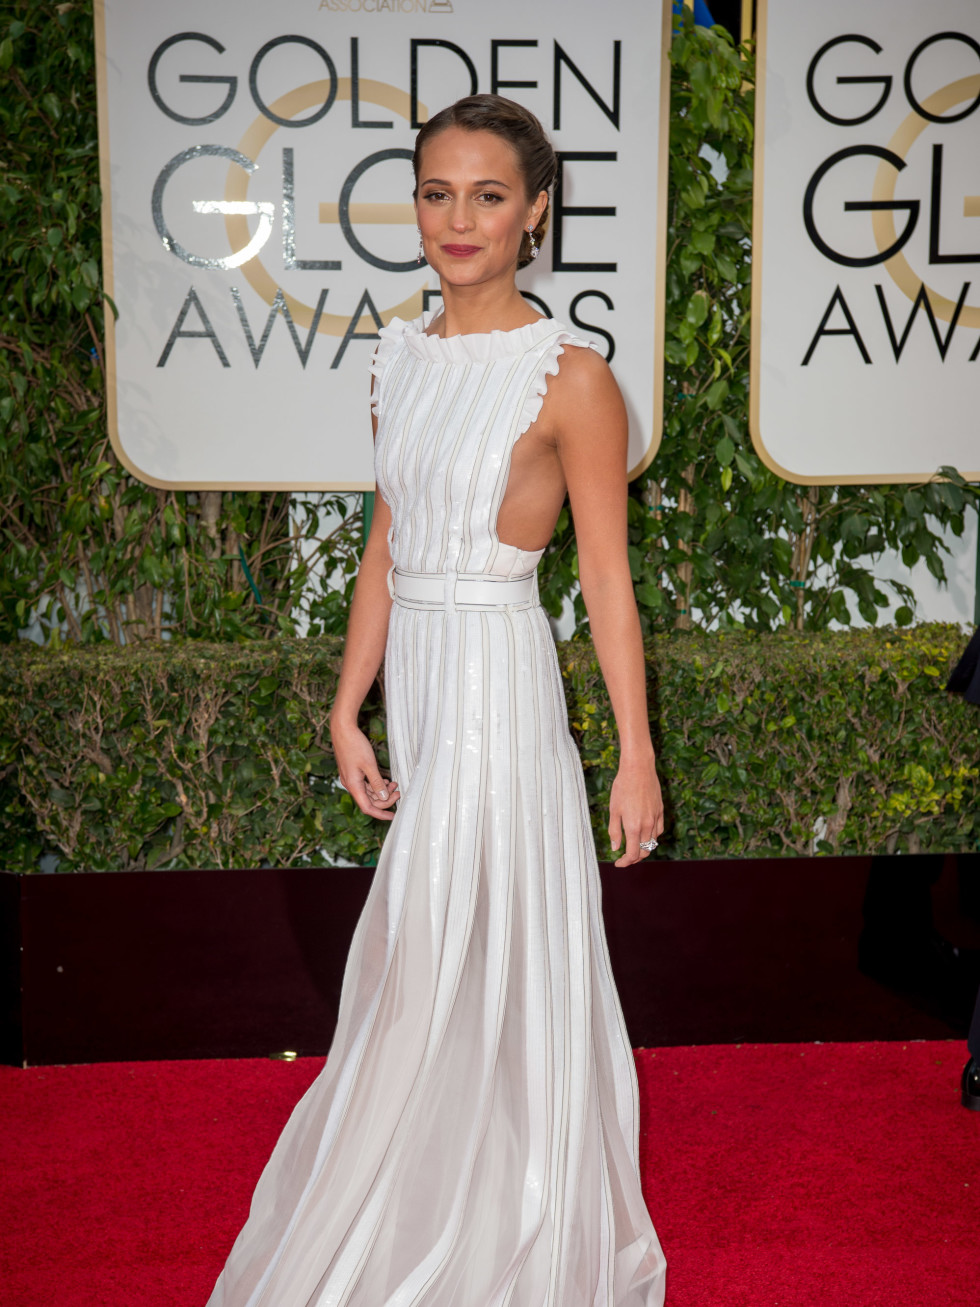 Alicia Vikander at Golden Globe Awards